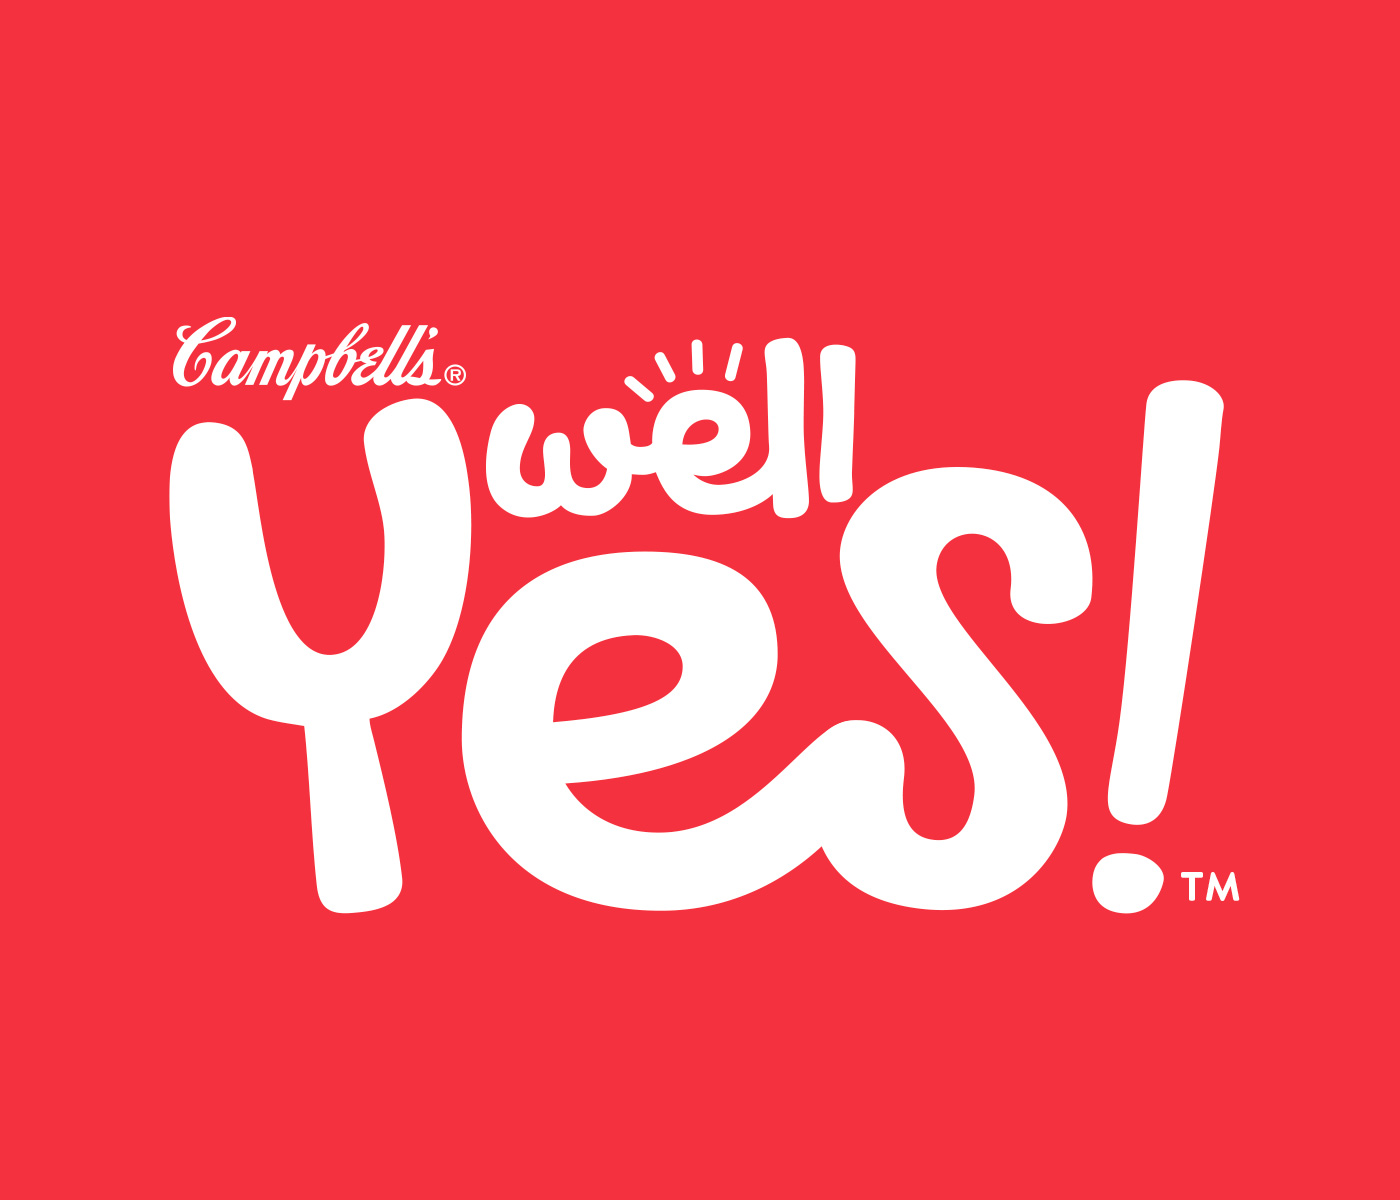 Campbell's Well Yes Logo